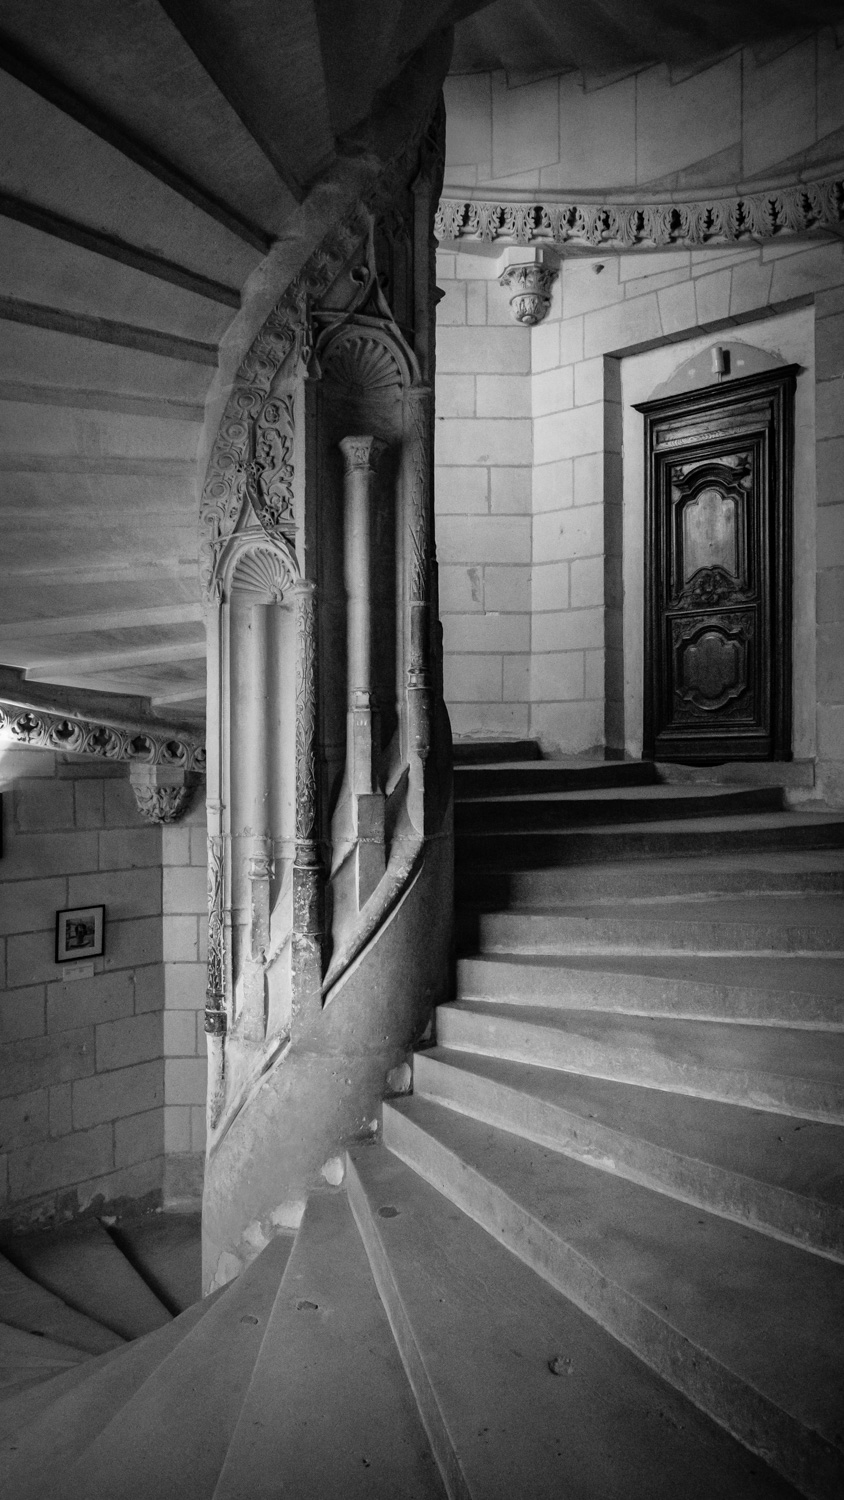 Interior stairwell at Chaumont